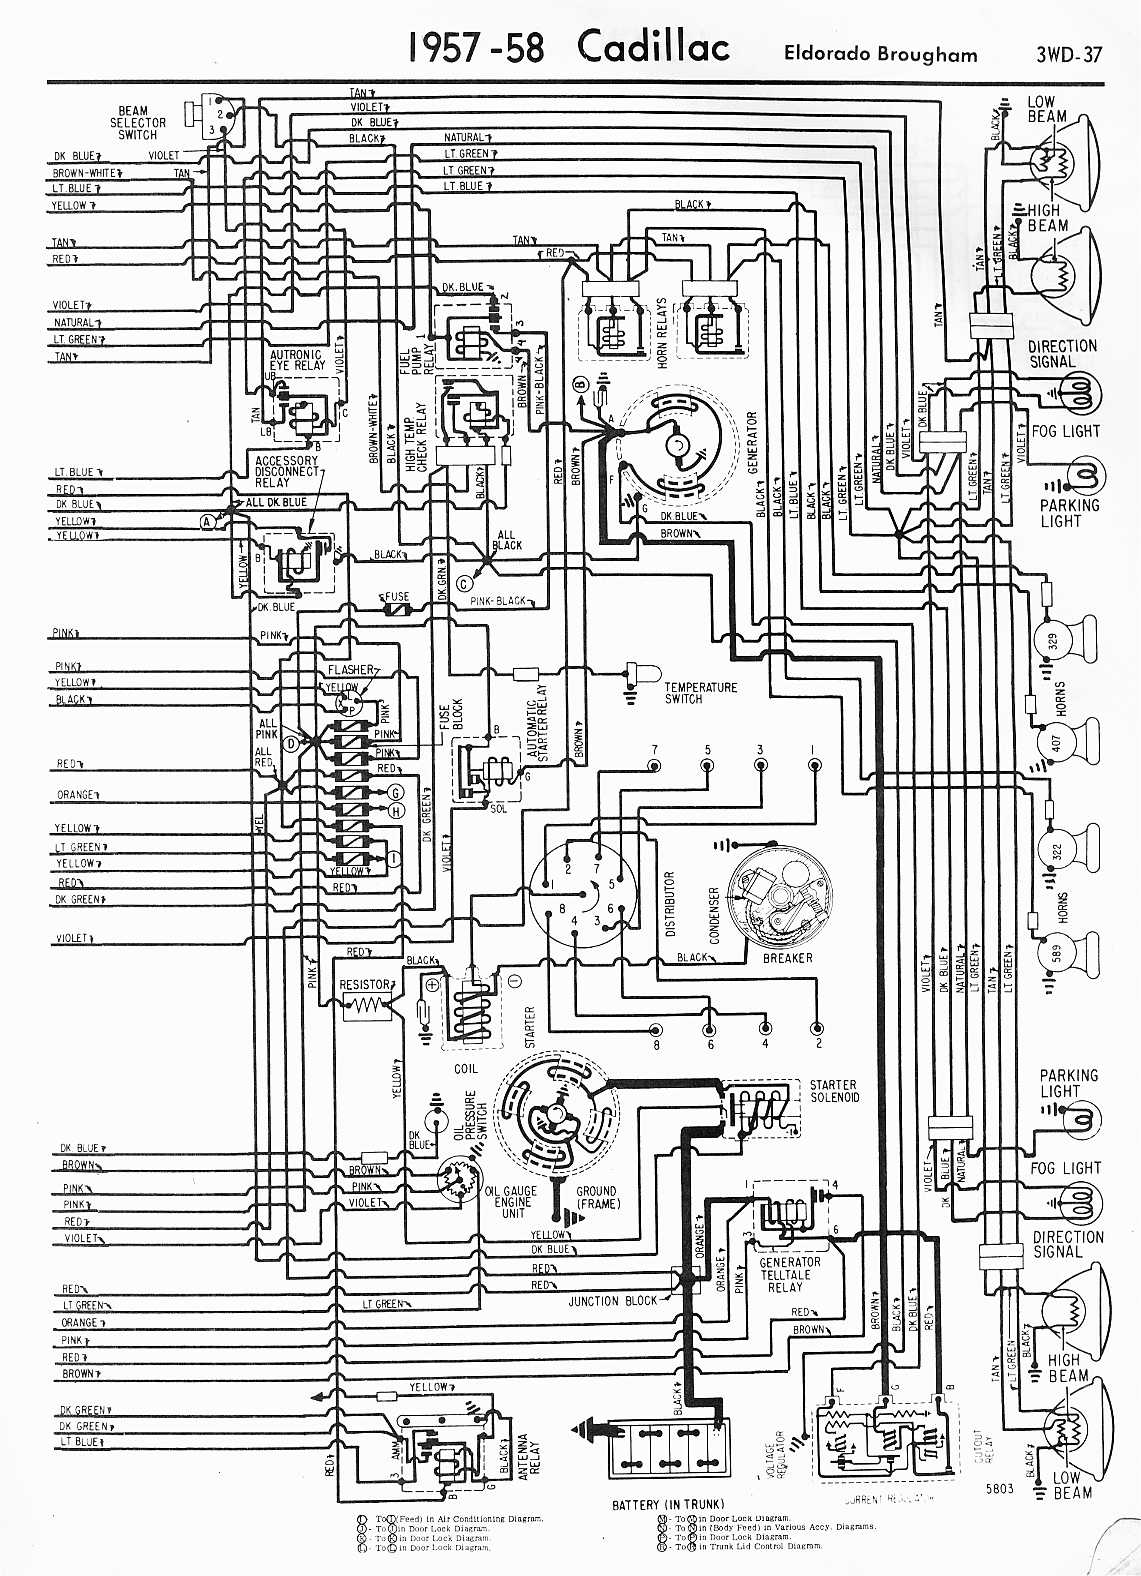 MWireCadi65_3WD 037 cadillac wiring diagrams 1957 1965 1956 Chevy Convertible at crackthecode.co